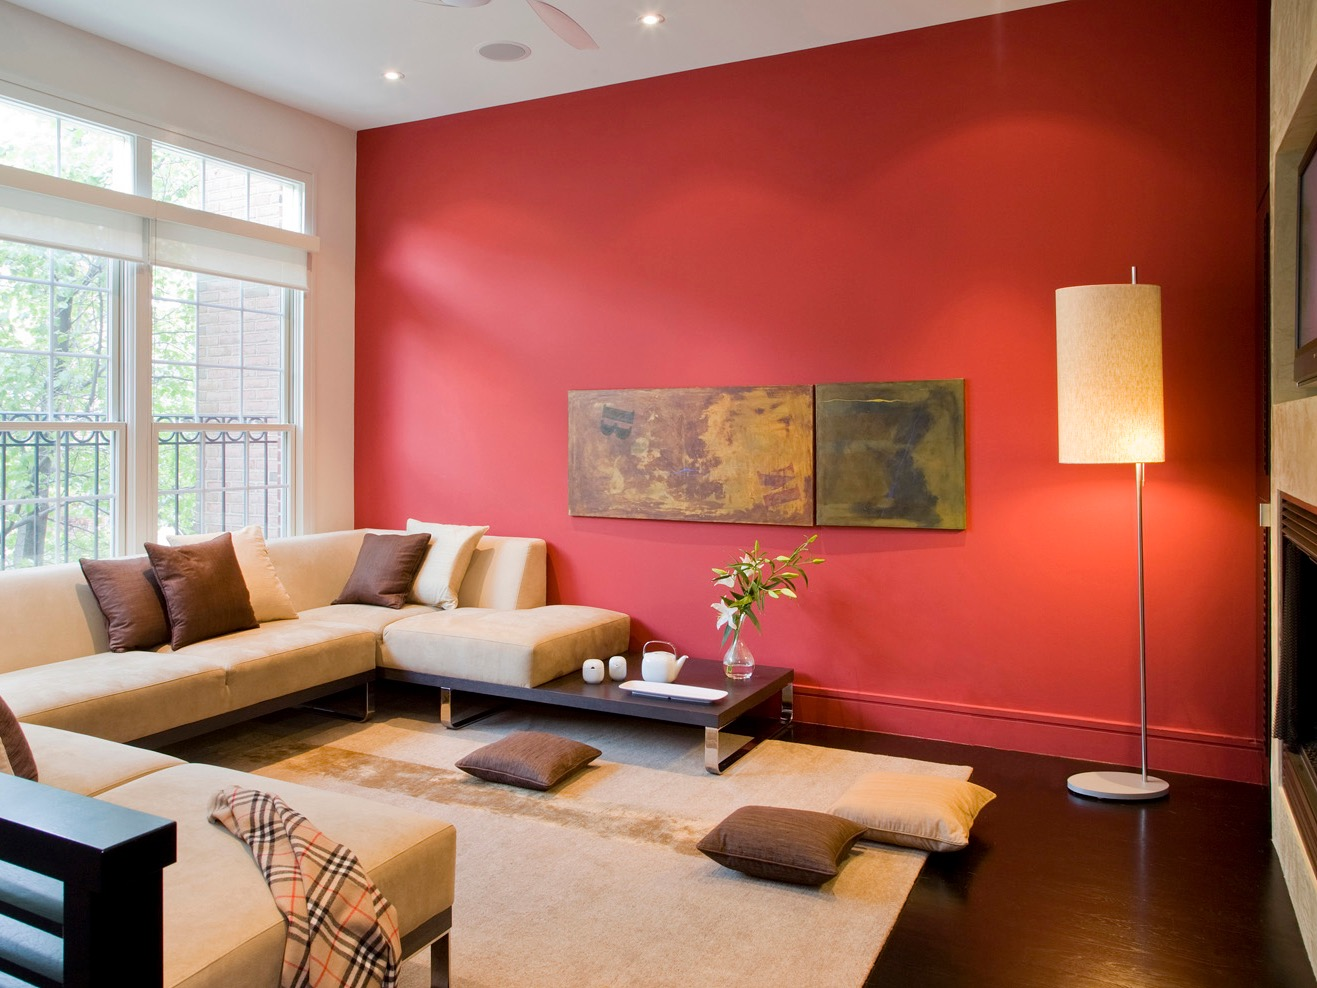 Modern Oriental Living Room With Beige Sectional And Red Wall (View 4 of 20)